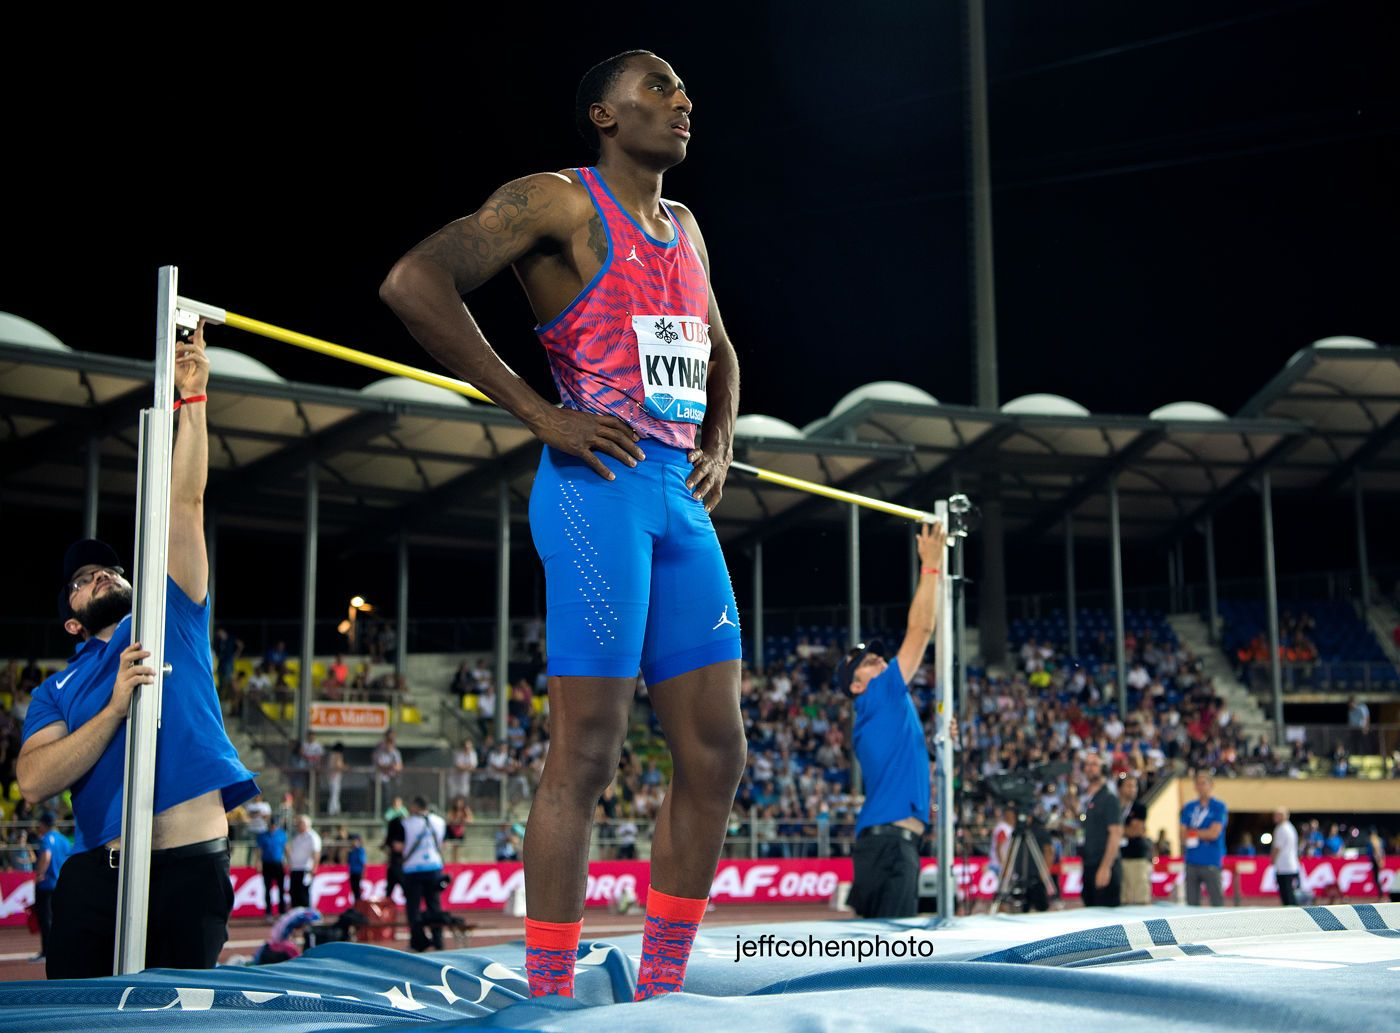 1r2016_athletissima_lausanne_kynard_hj_jeff_cohen_photo_281_web.jpg